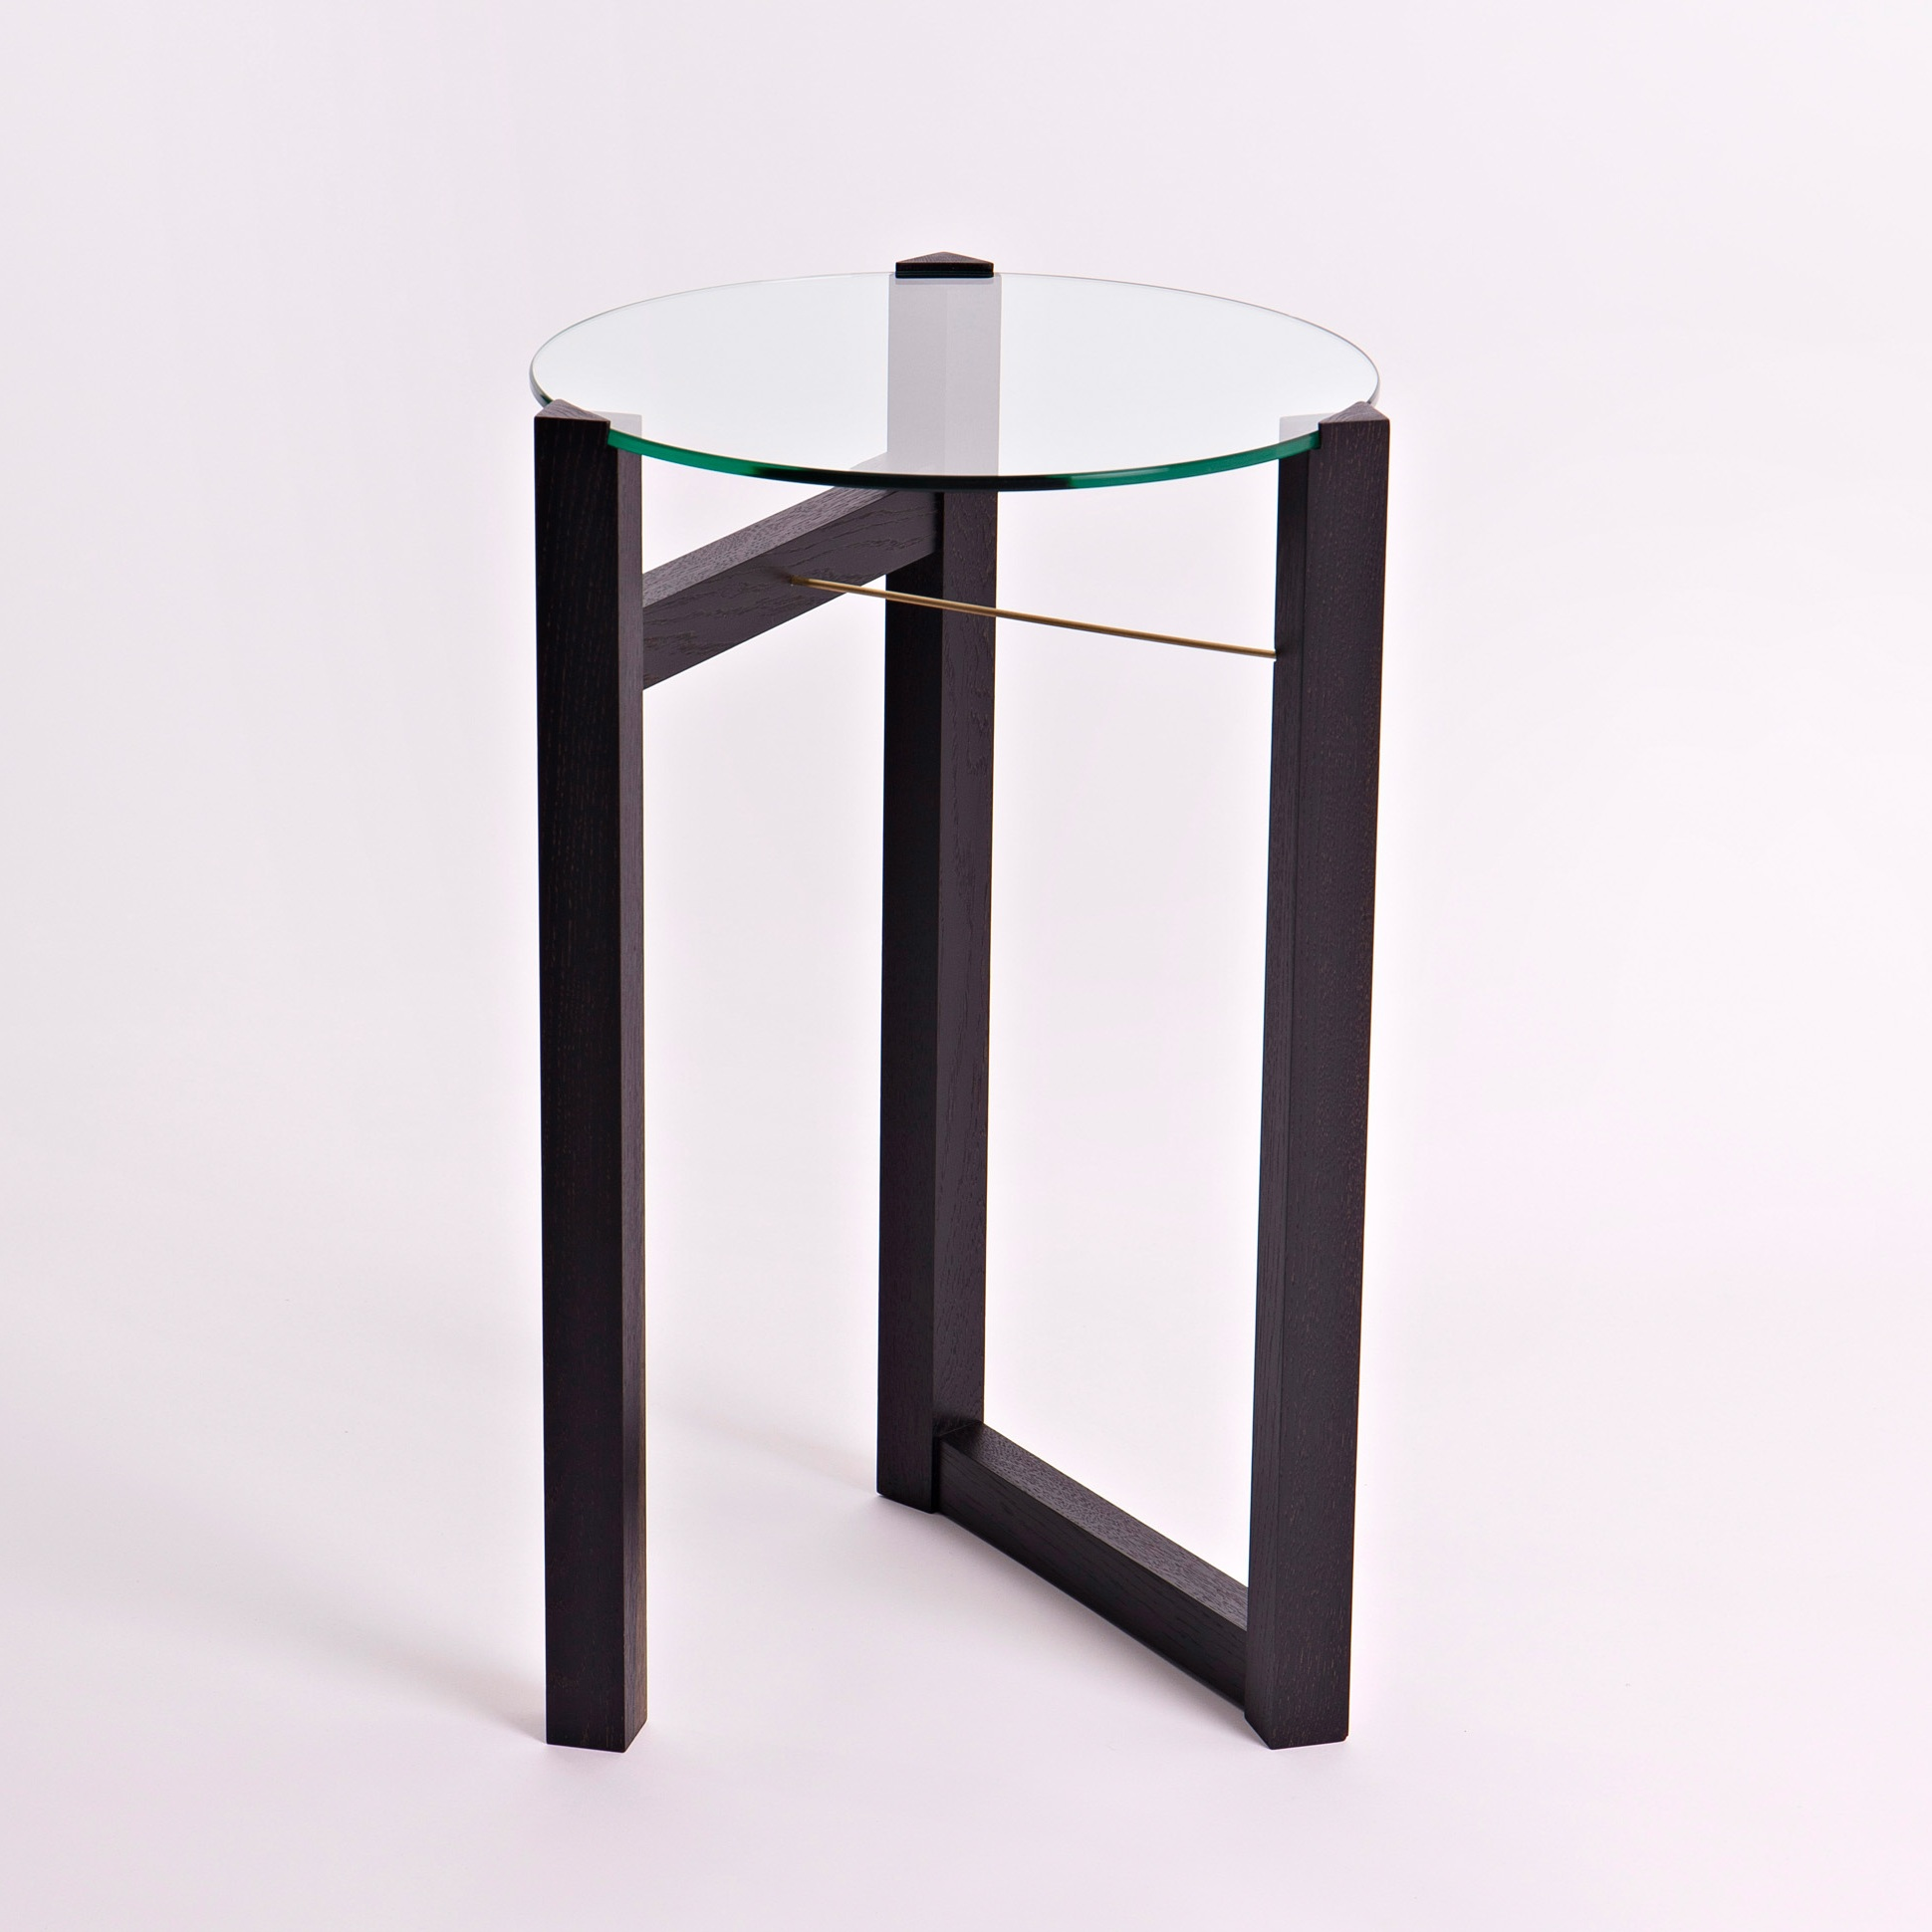 trigonon-side-table1_colinharris.jpg